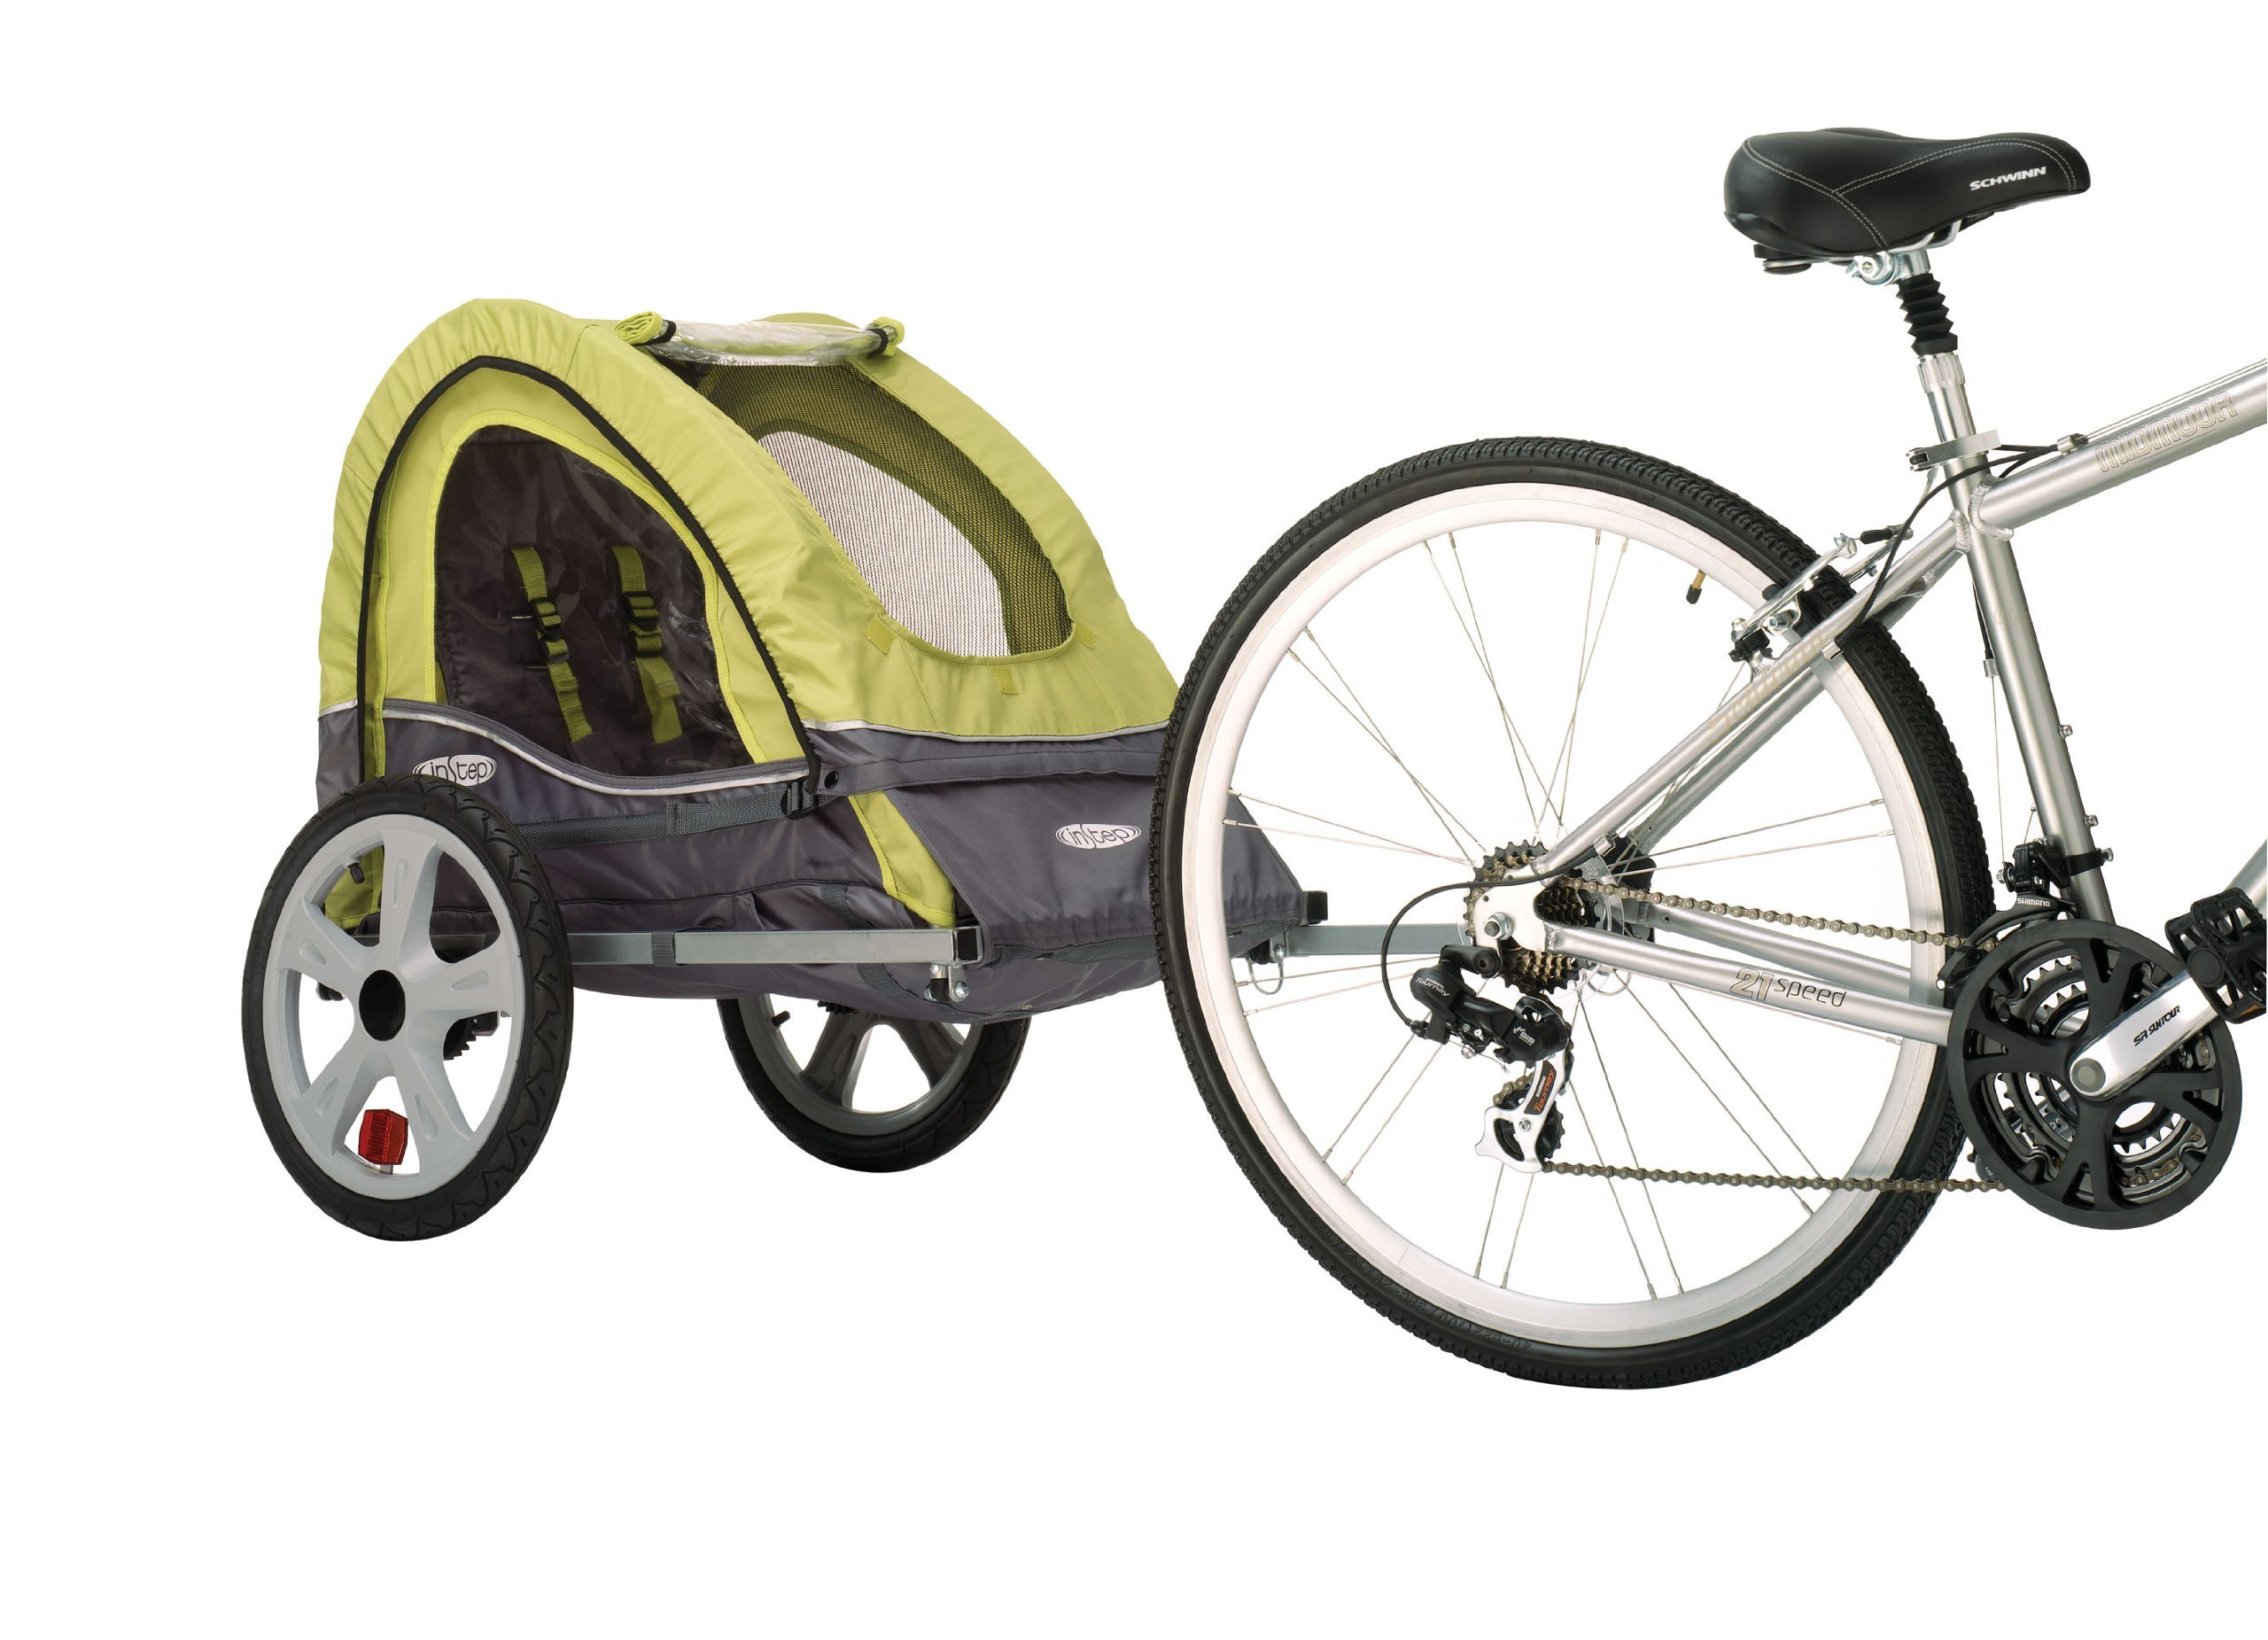 Pacific Cycle InStep Sync Single Bicycle Trailer, Green/Gray (Renewed) by Pacific Cycle (Image #2)